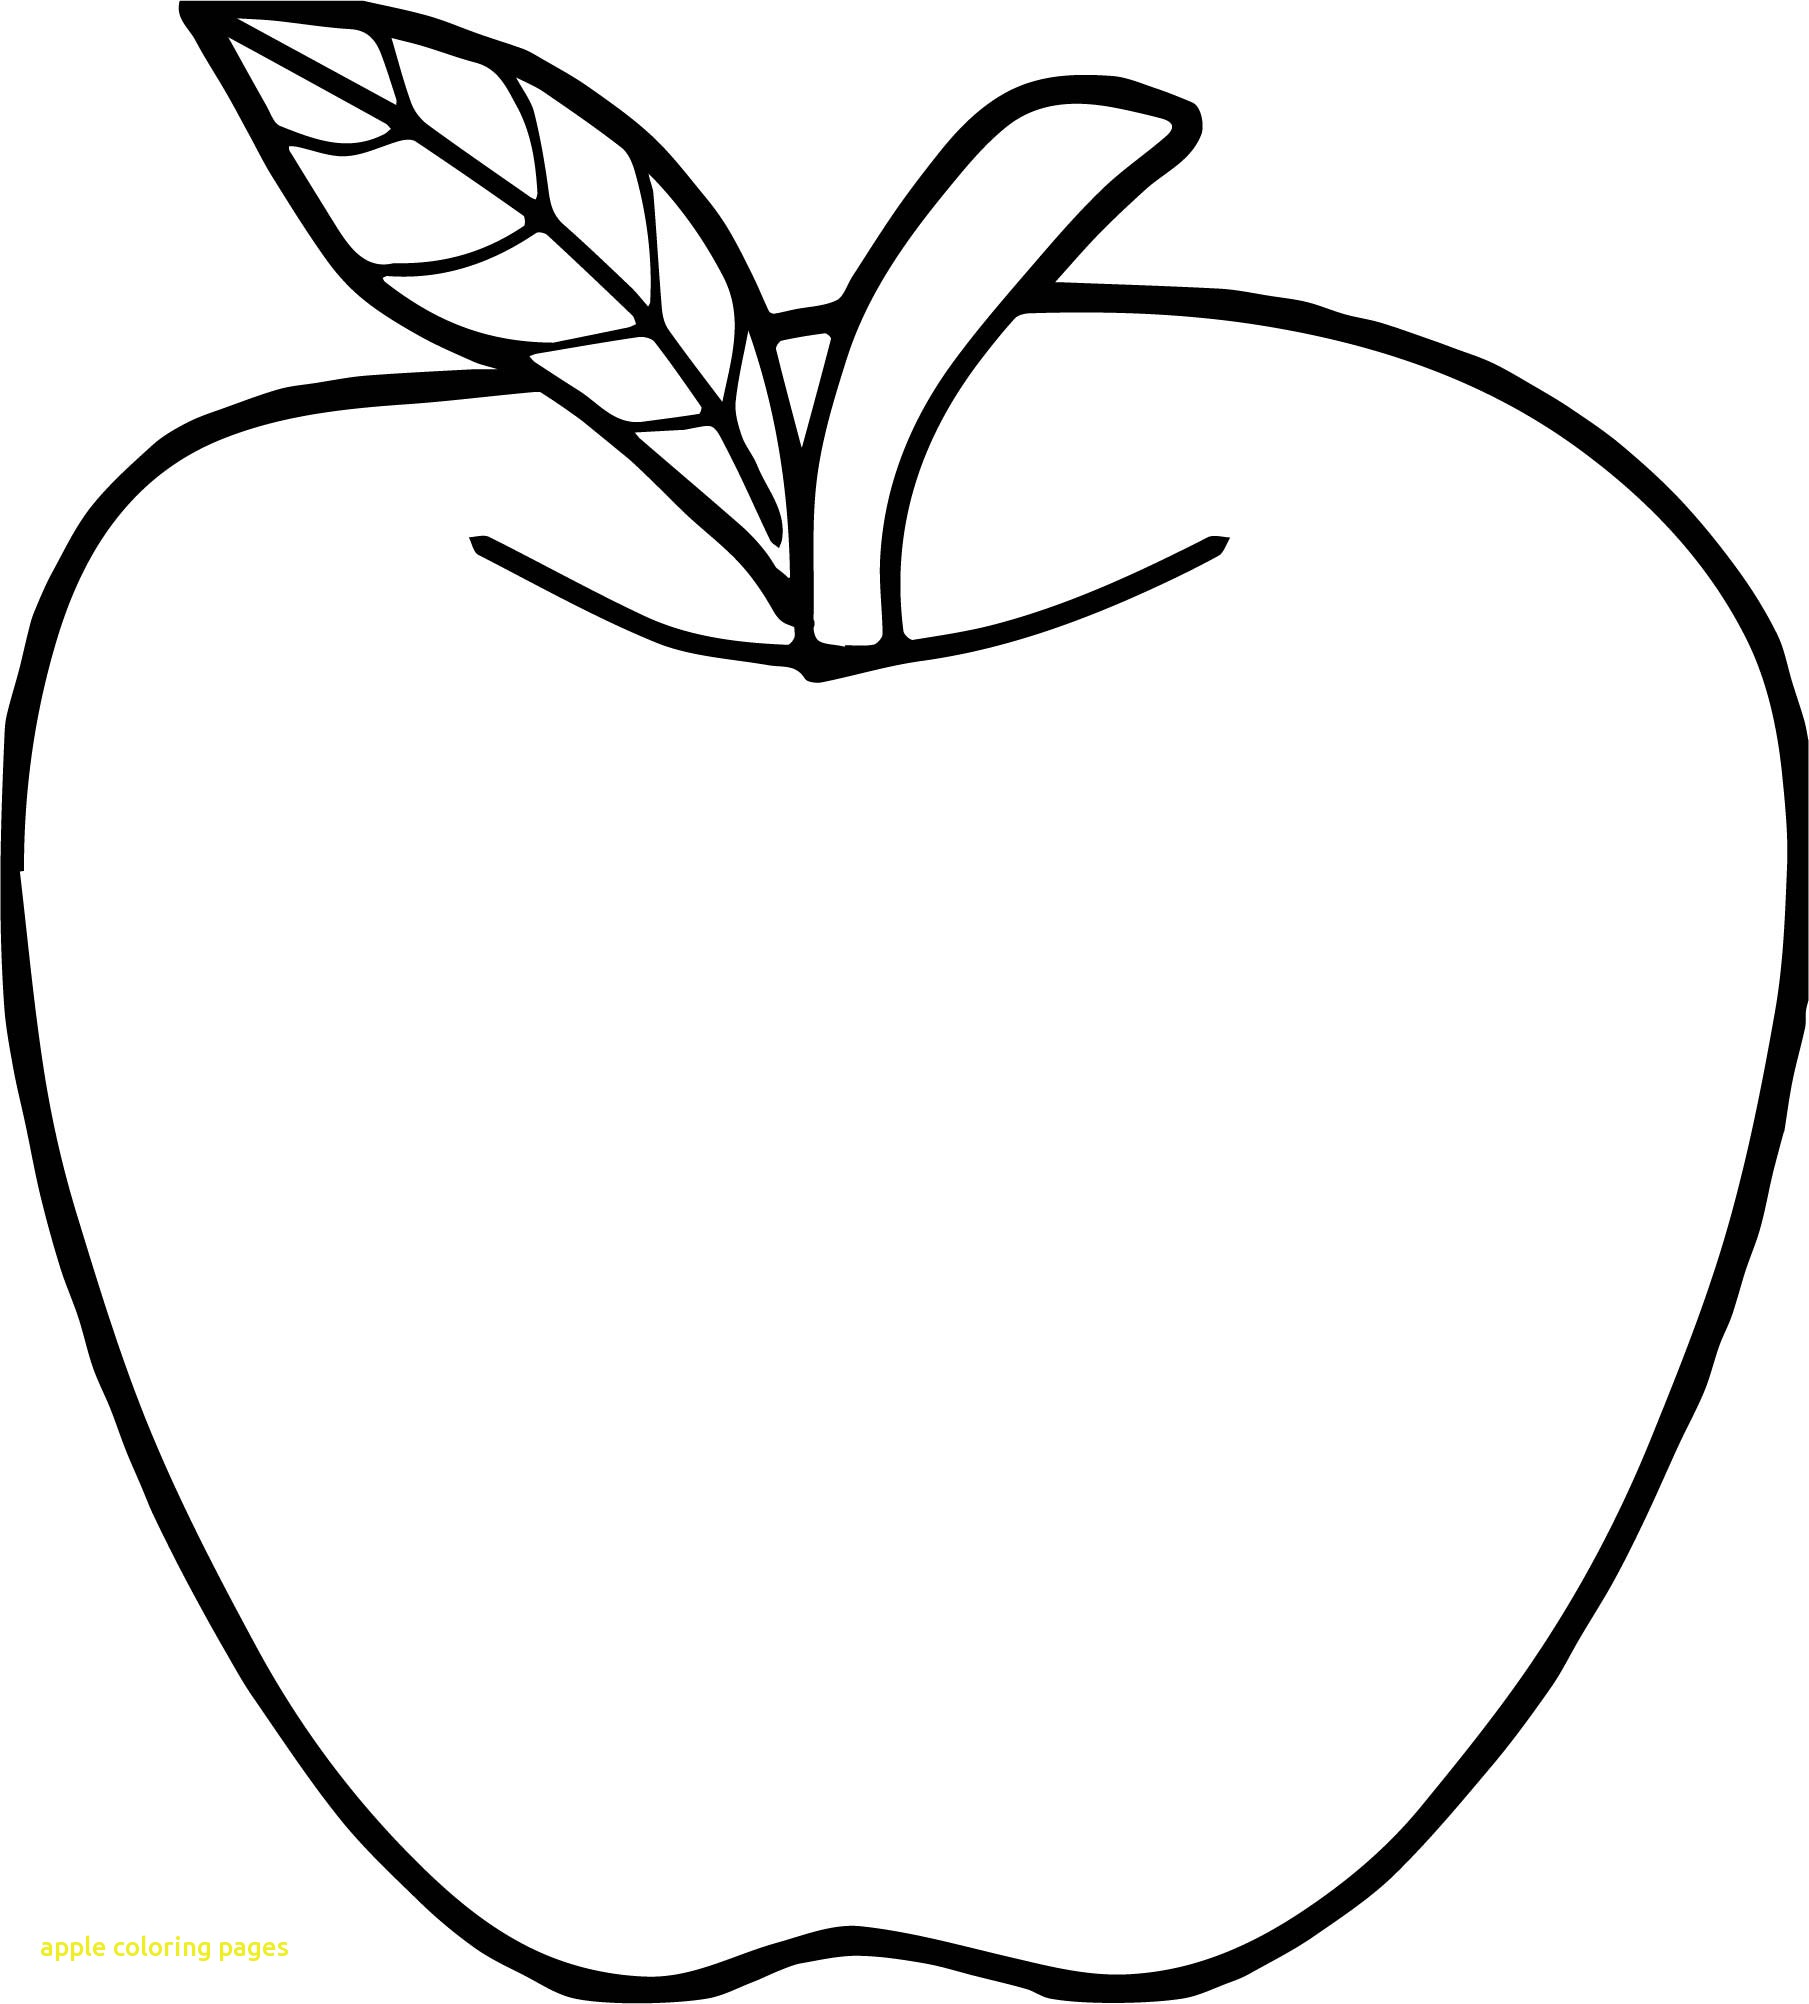 1809x2004 Apple Coloring Page